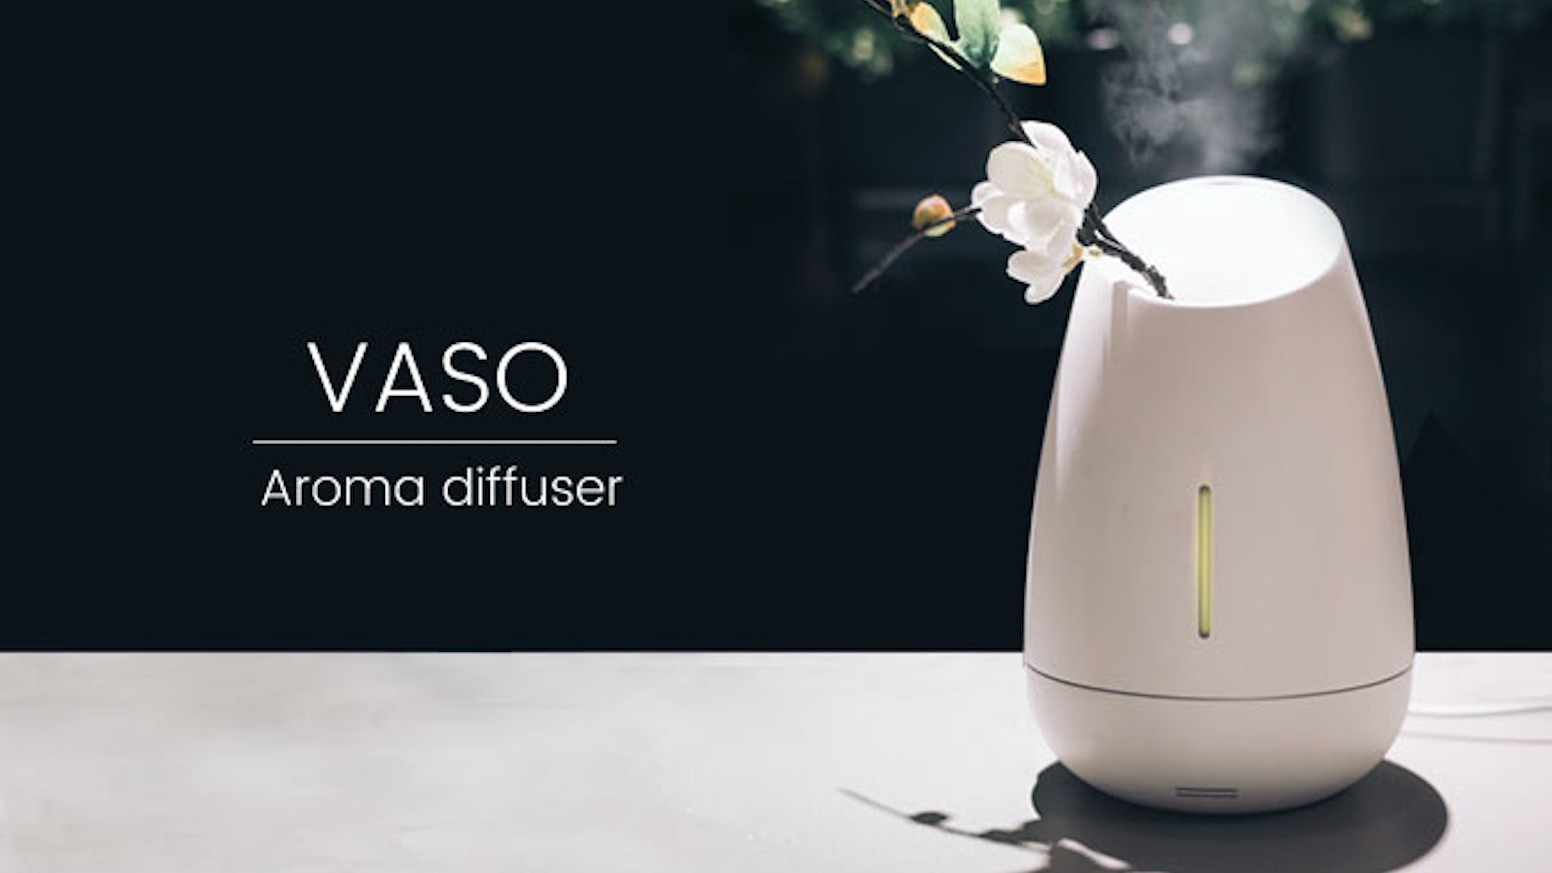 Need true relaxation? This smart aroma diffuser helps to find your zen.